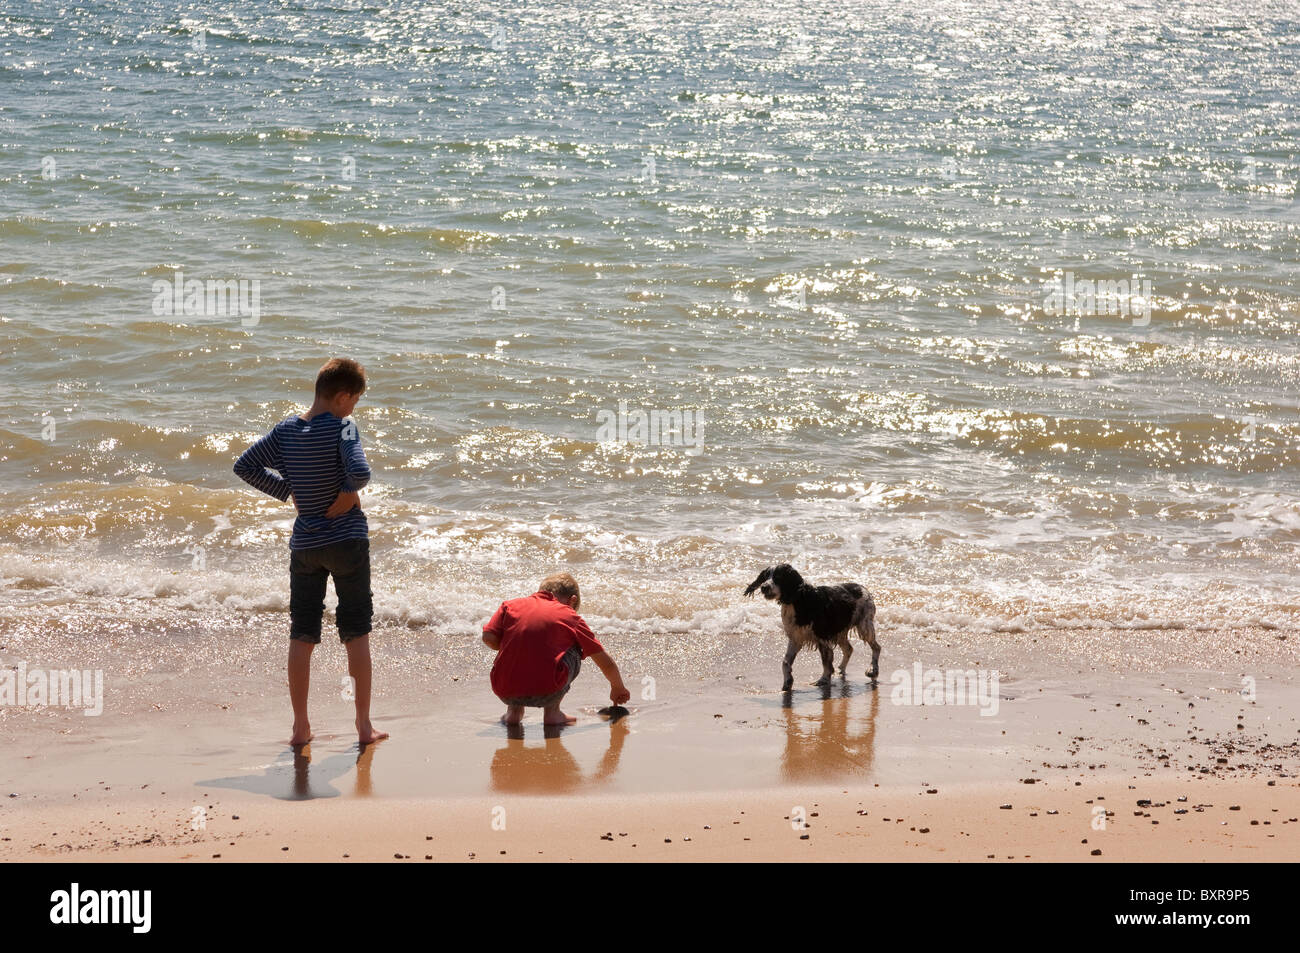 A MODEL RELEASED picture of two boys and their dog on a UK beach paddling in the sea in the summer - Stock Image